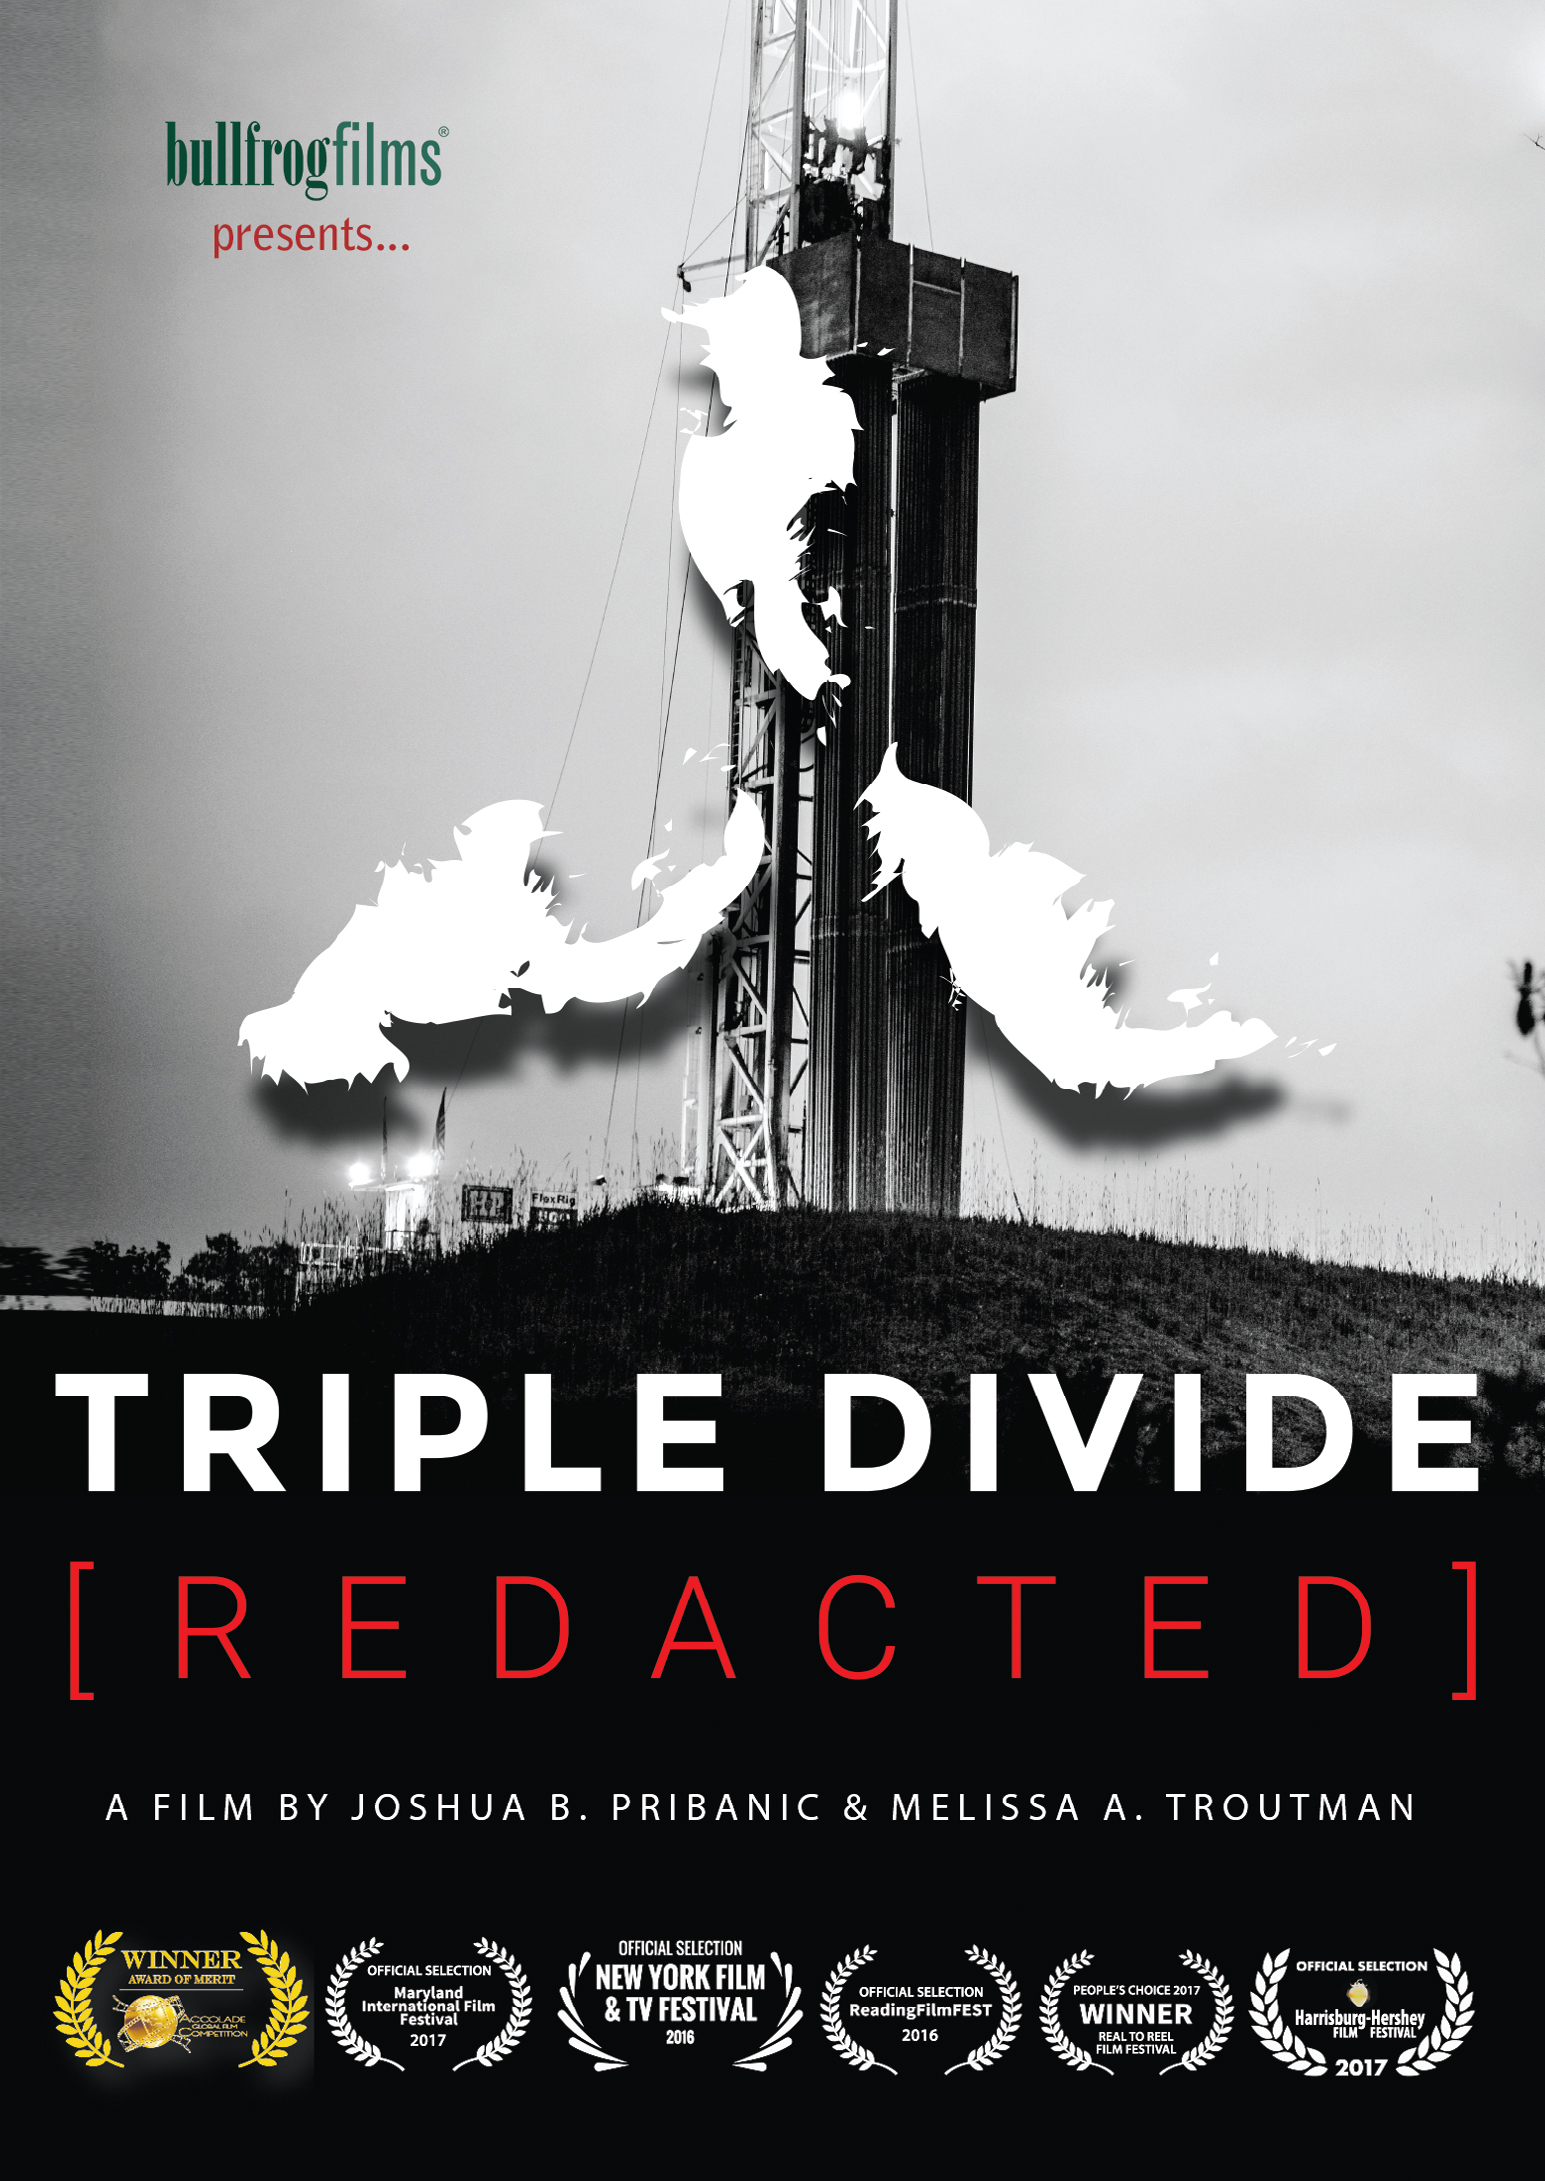 TRIPLE DIVIDE [REDACTED] Discussion Guide